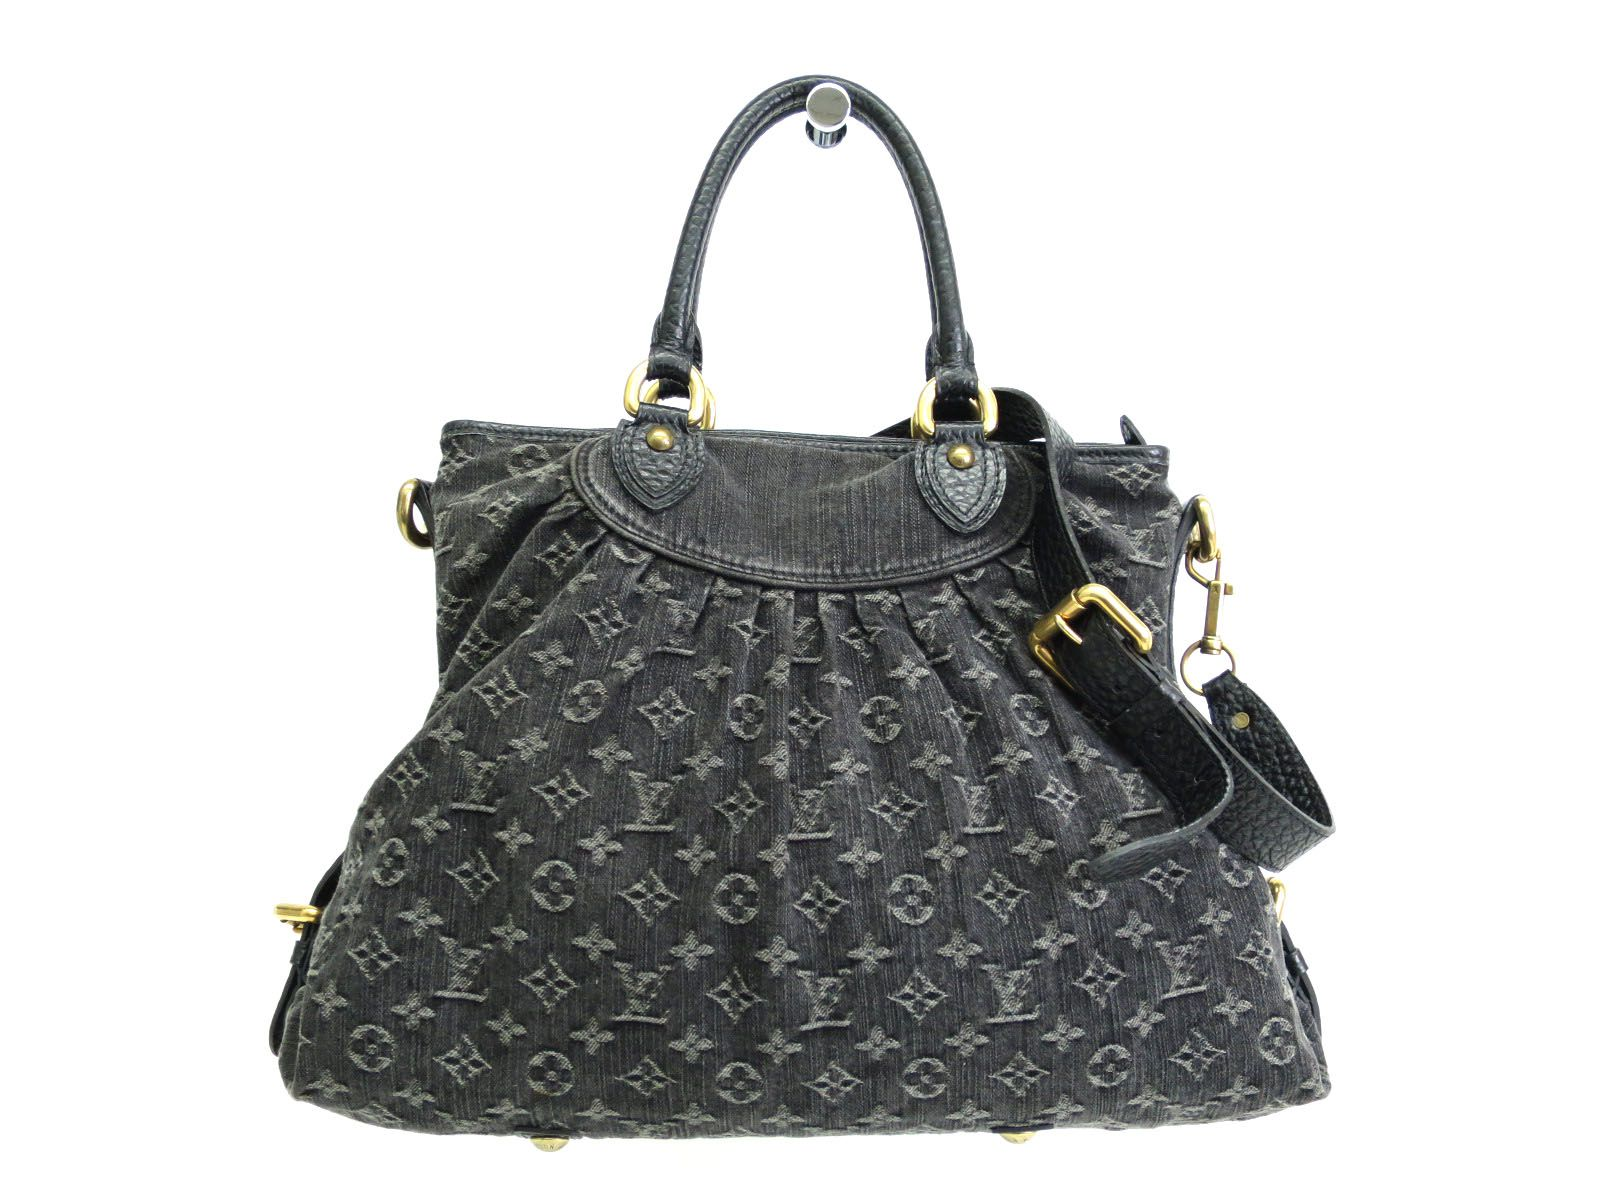 c744d14aad6a Louis Vuitton Black Monogram Denim Neo Cabby GM Shoulder Bag - Luxurylana  Boutique